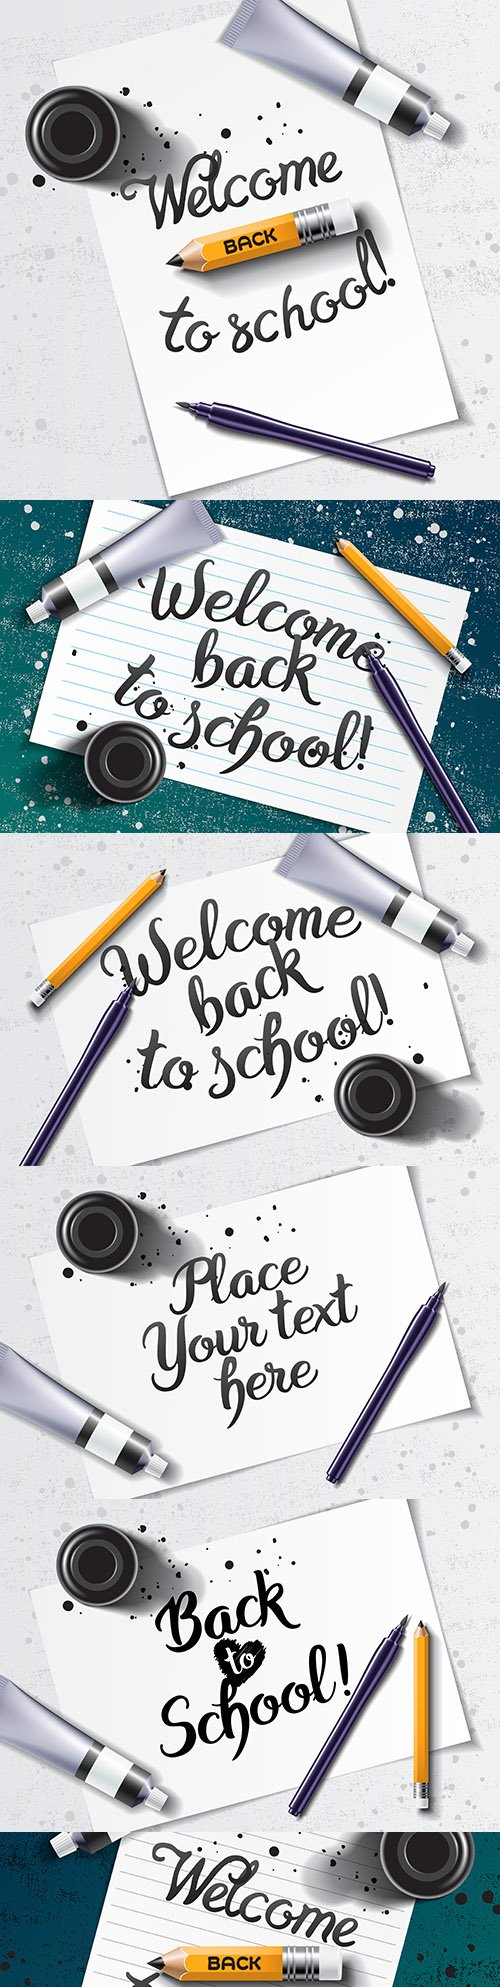 Welcome back to the school of painted lettering with layout